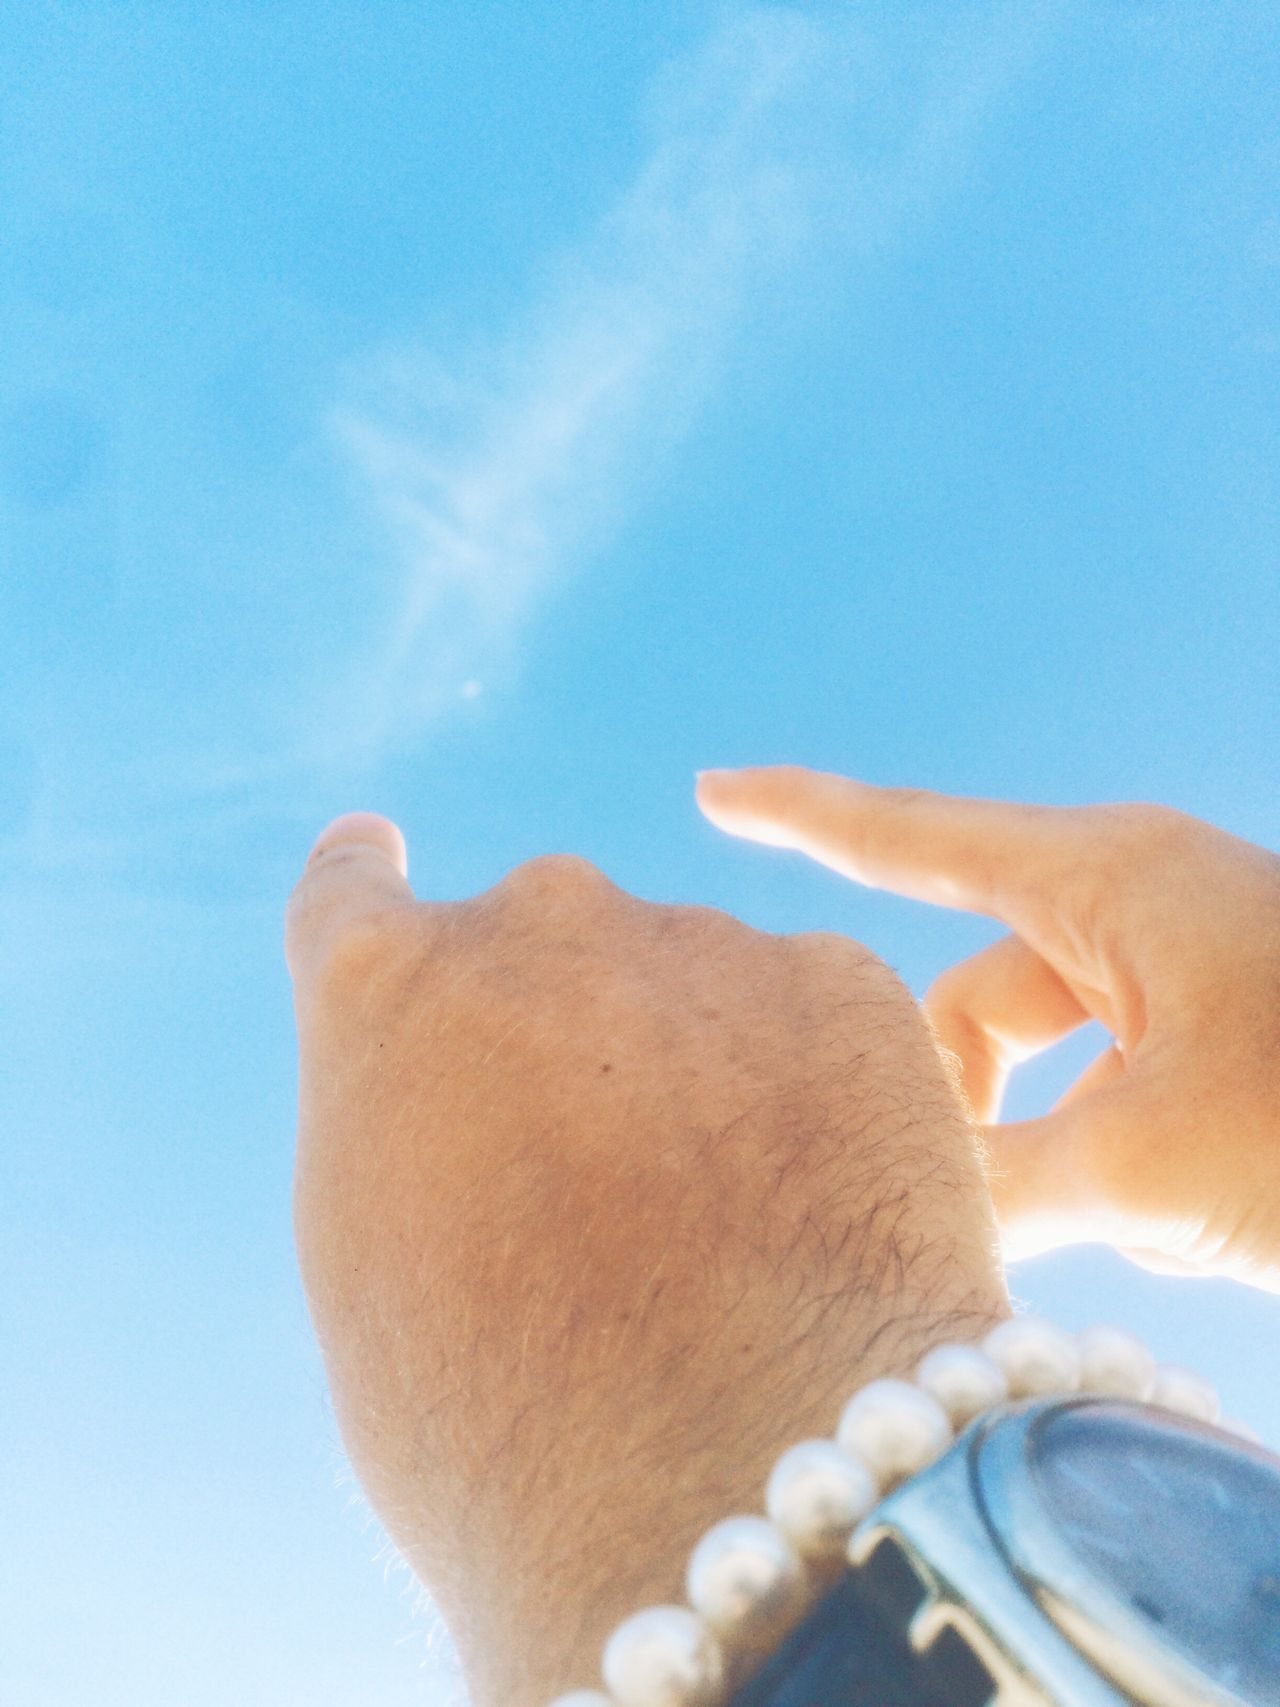 Tothemoon Moon Moonatday Sky Hands Couple Pearls Watch Abstract Dream Thailand Thai